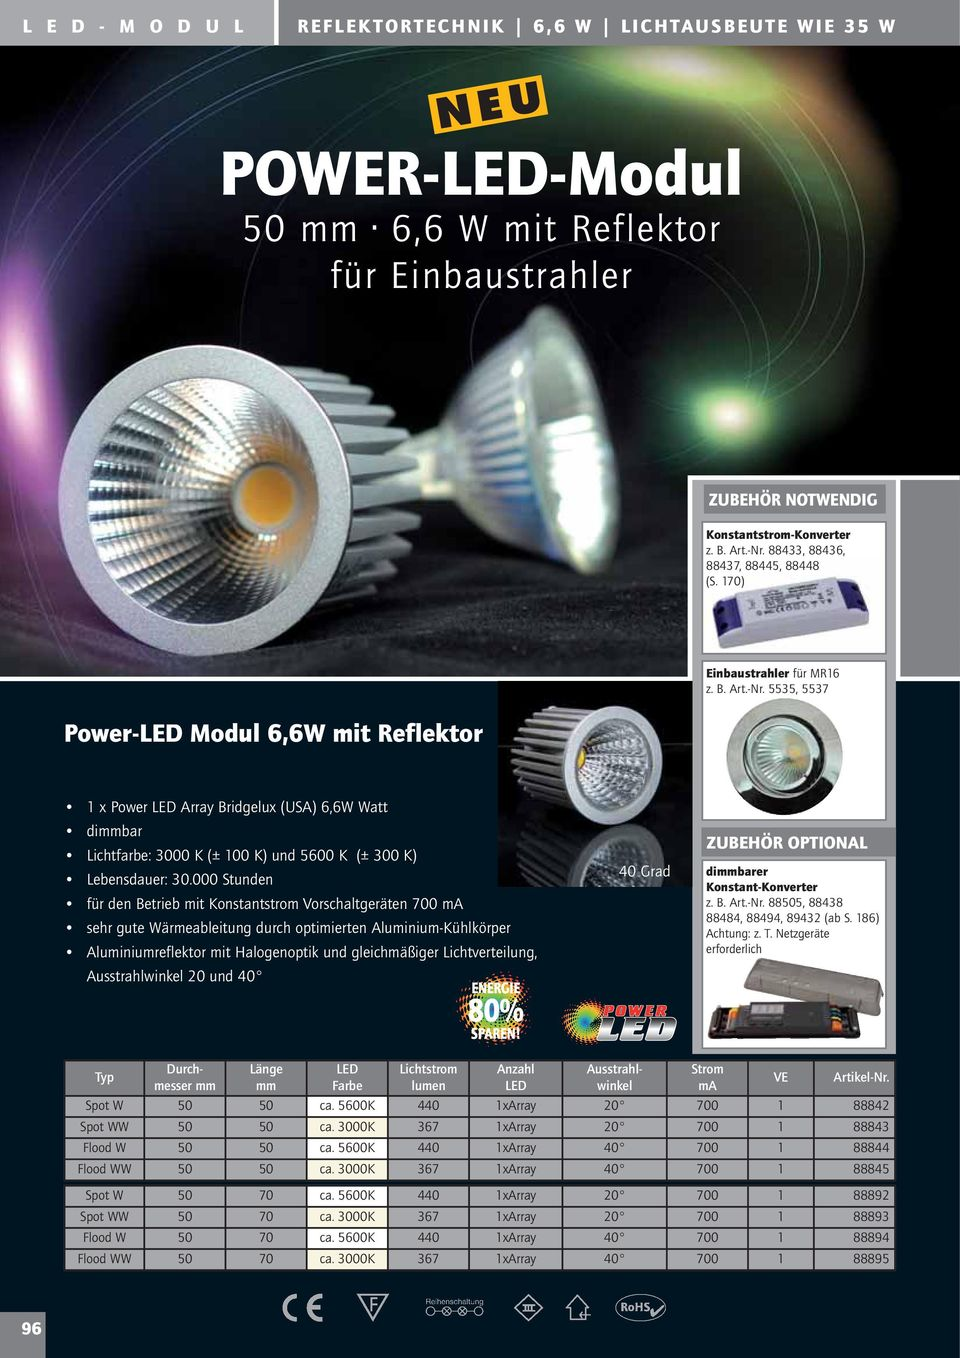 5535, 5537 1 x Power Array Bridgelux (USA) 6,6W Watt dibar Lichtfarbe: 3000 K (± 100 K) und 5600 K (± 300 K) Lebensdauer: 30.